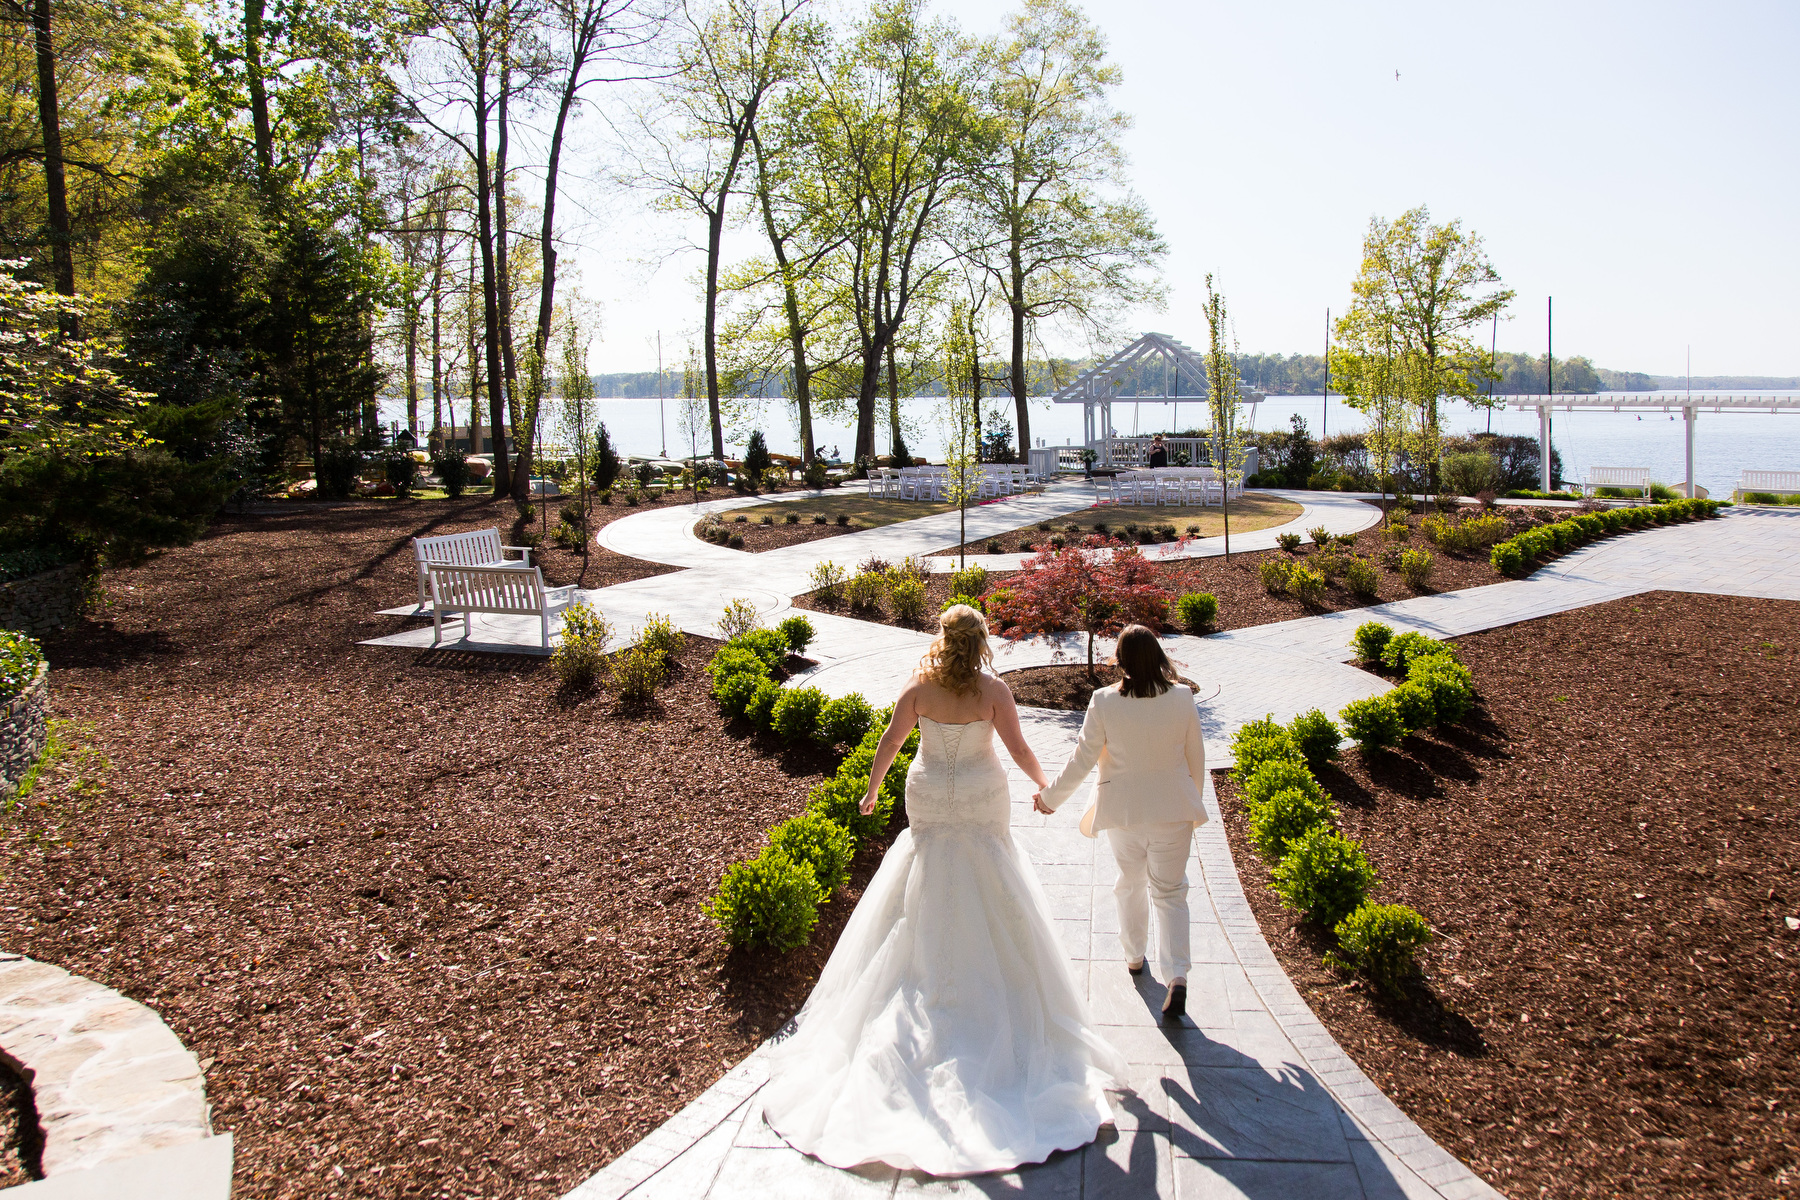 Two brides walk towards their wedding ceremony site at The Boathouse at Sunday Park